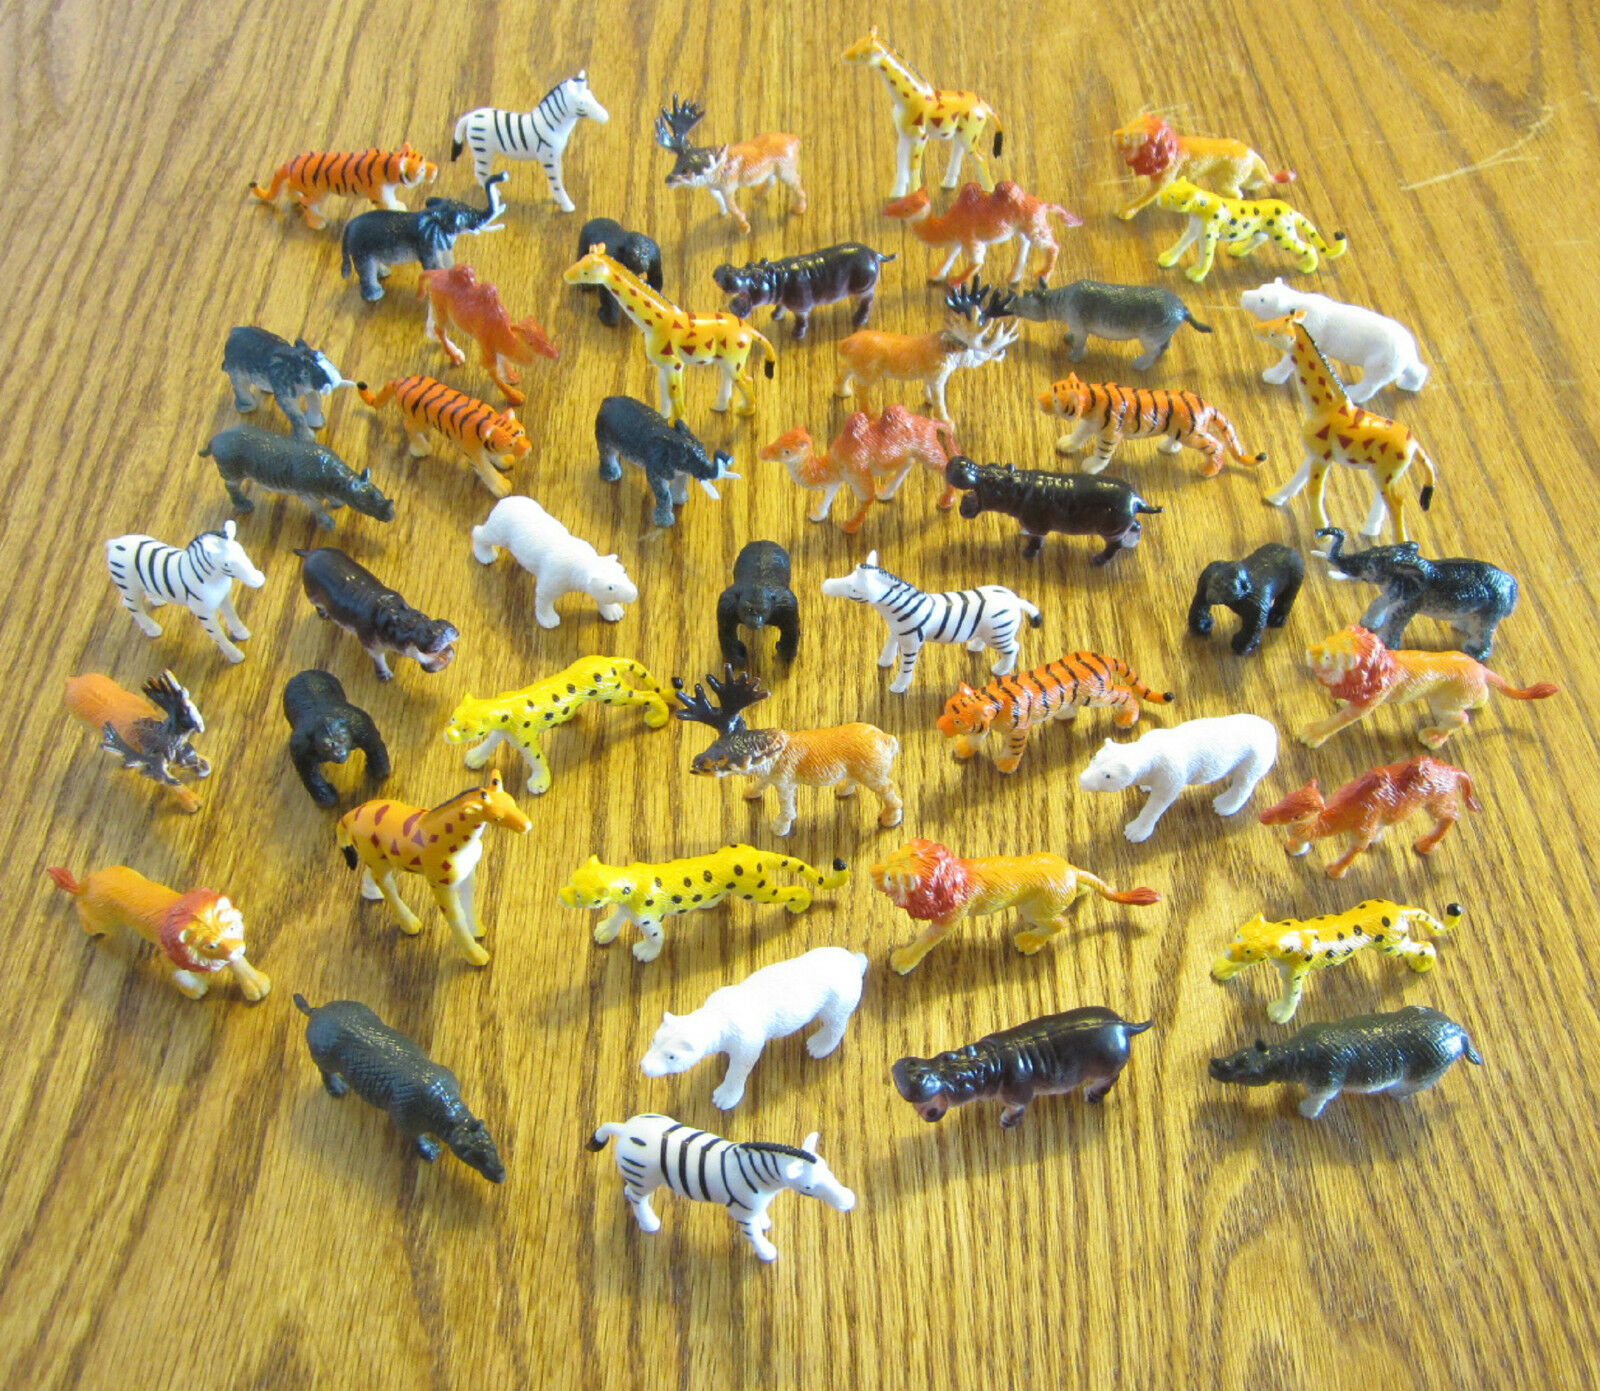 125 NEW ZOO ANIMALS TOY PLAYSET WILD JUNGLE ANIMAL  2